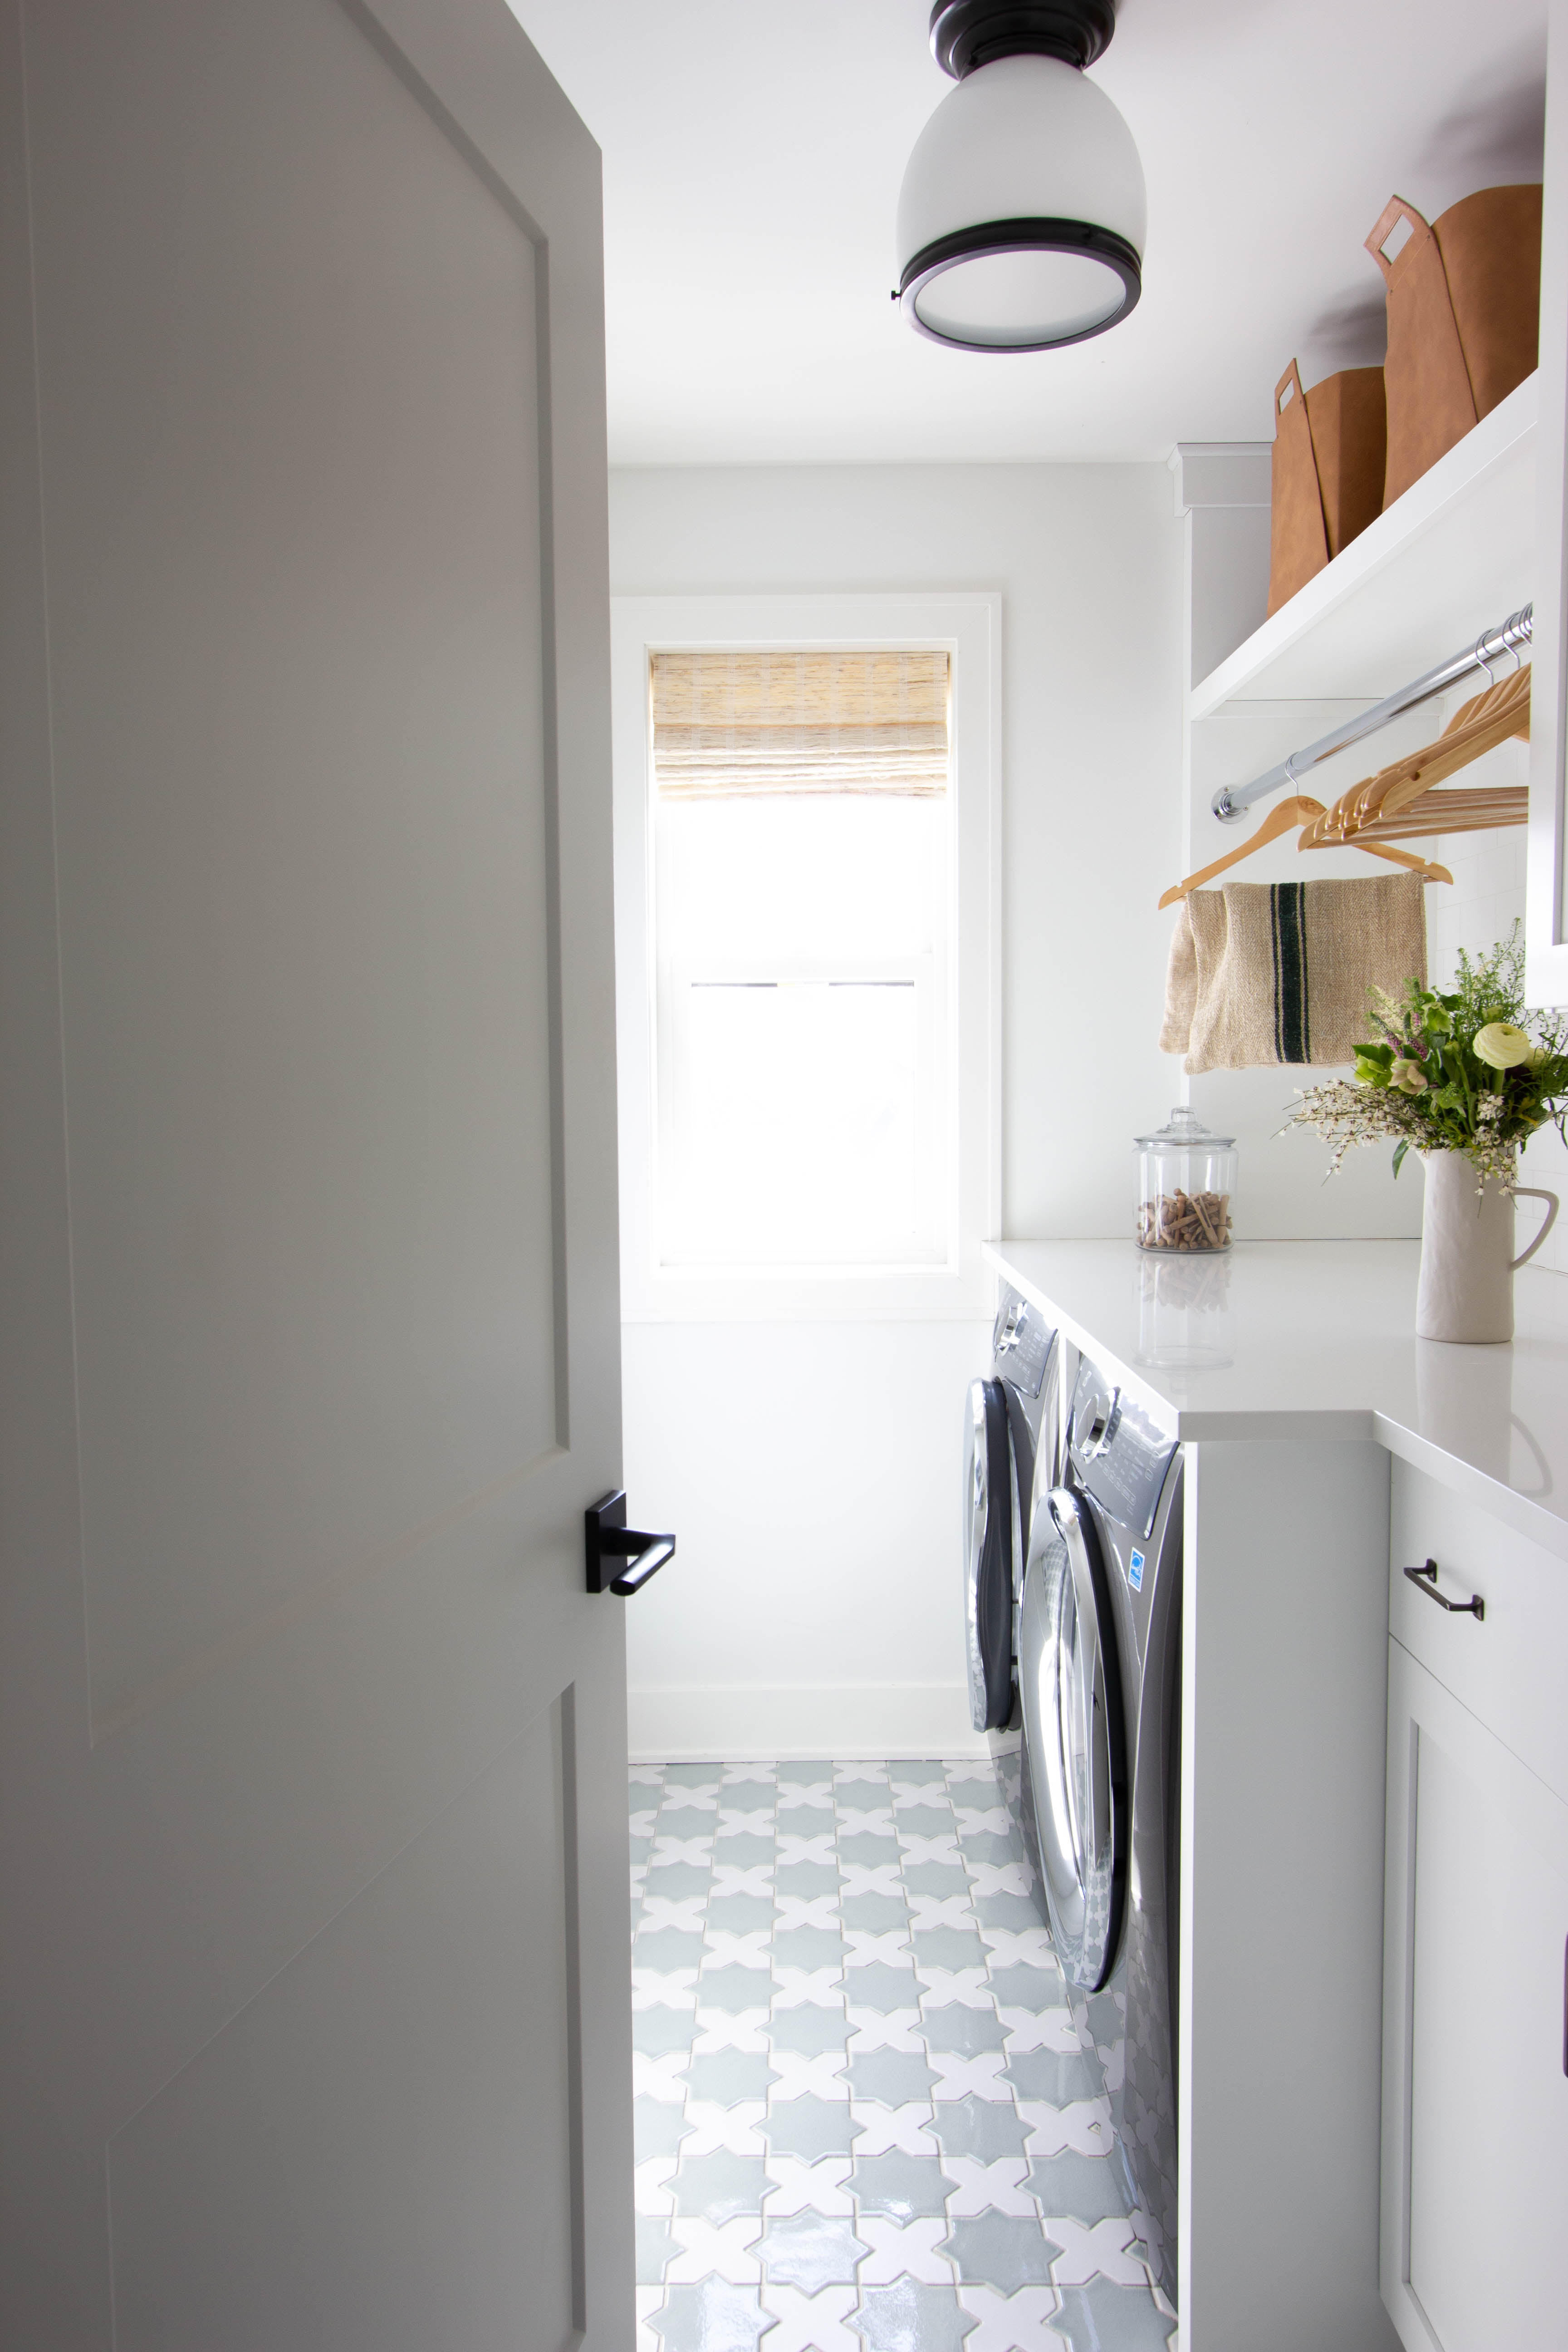 2017_Q2_img_residential_hi_res_rights_with_credit_tiffany_weiss_designs_laundry_room_floor_residential_mini_star_and_cross_salton_sea_daisy_FC192884.jpg?mtime=20181005094603#asset:419615